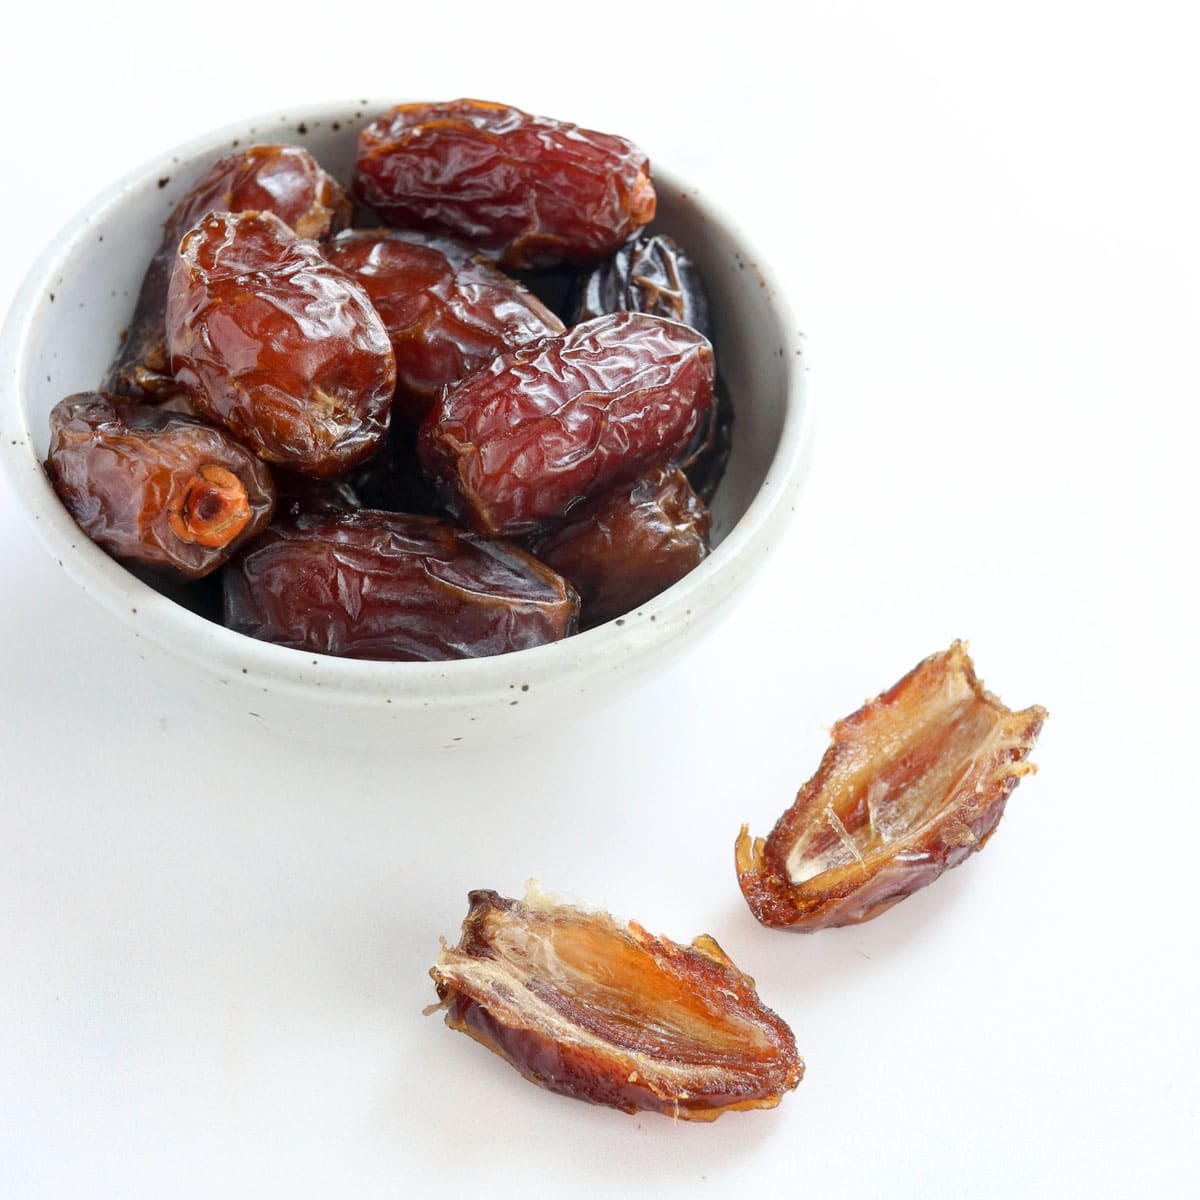 medool dates in white bowl